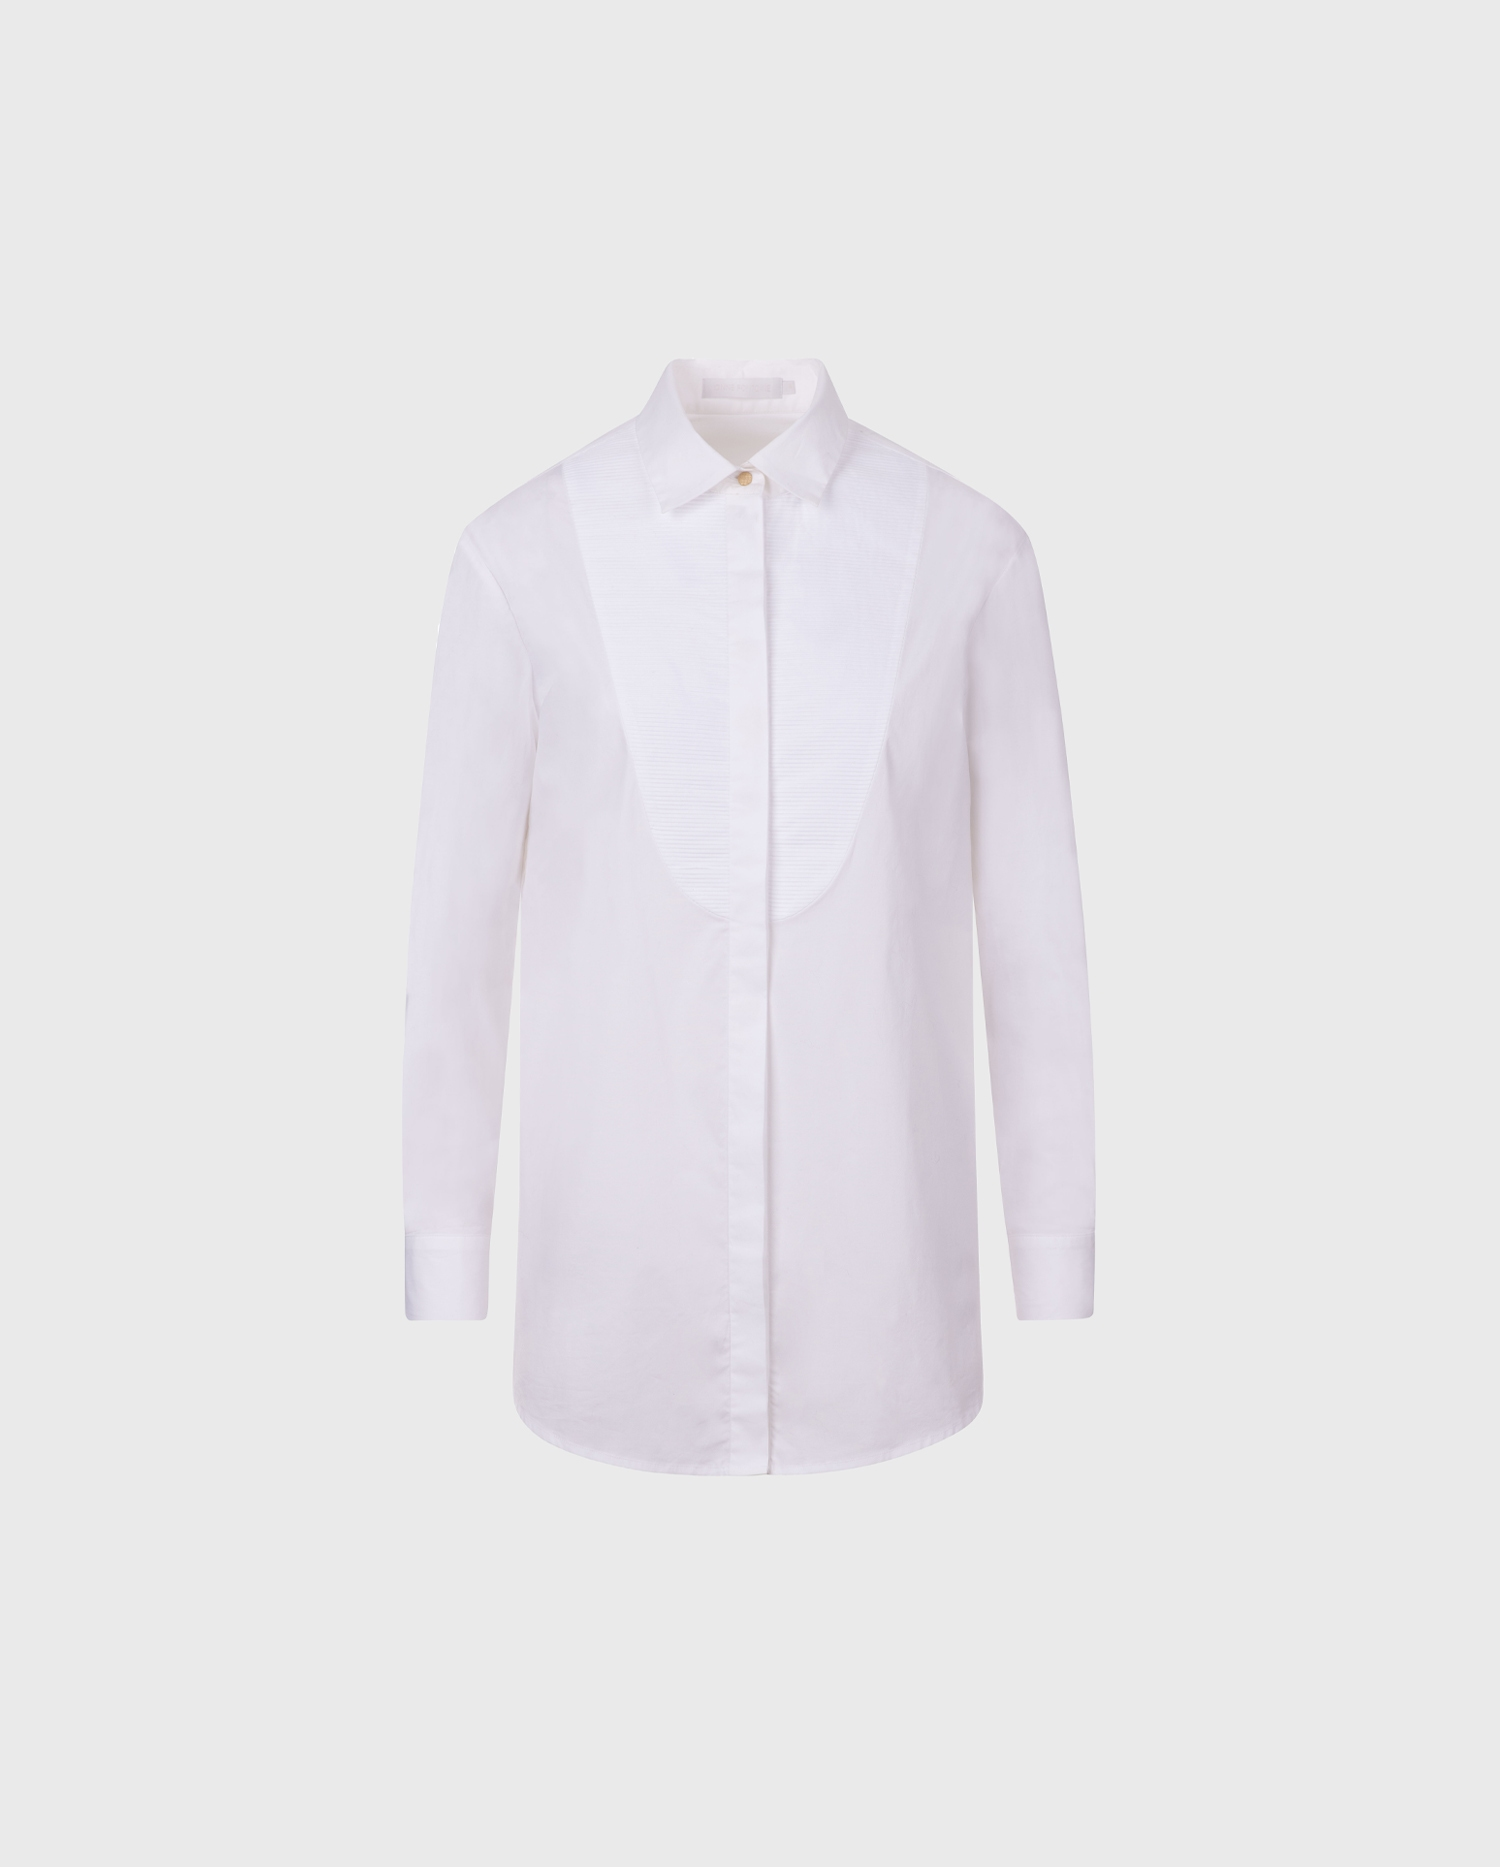 LEOZANE is the perfect oversized long sleeve white shirt, featuring a pleated bib front.